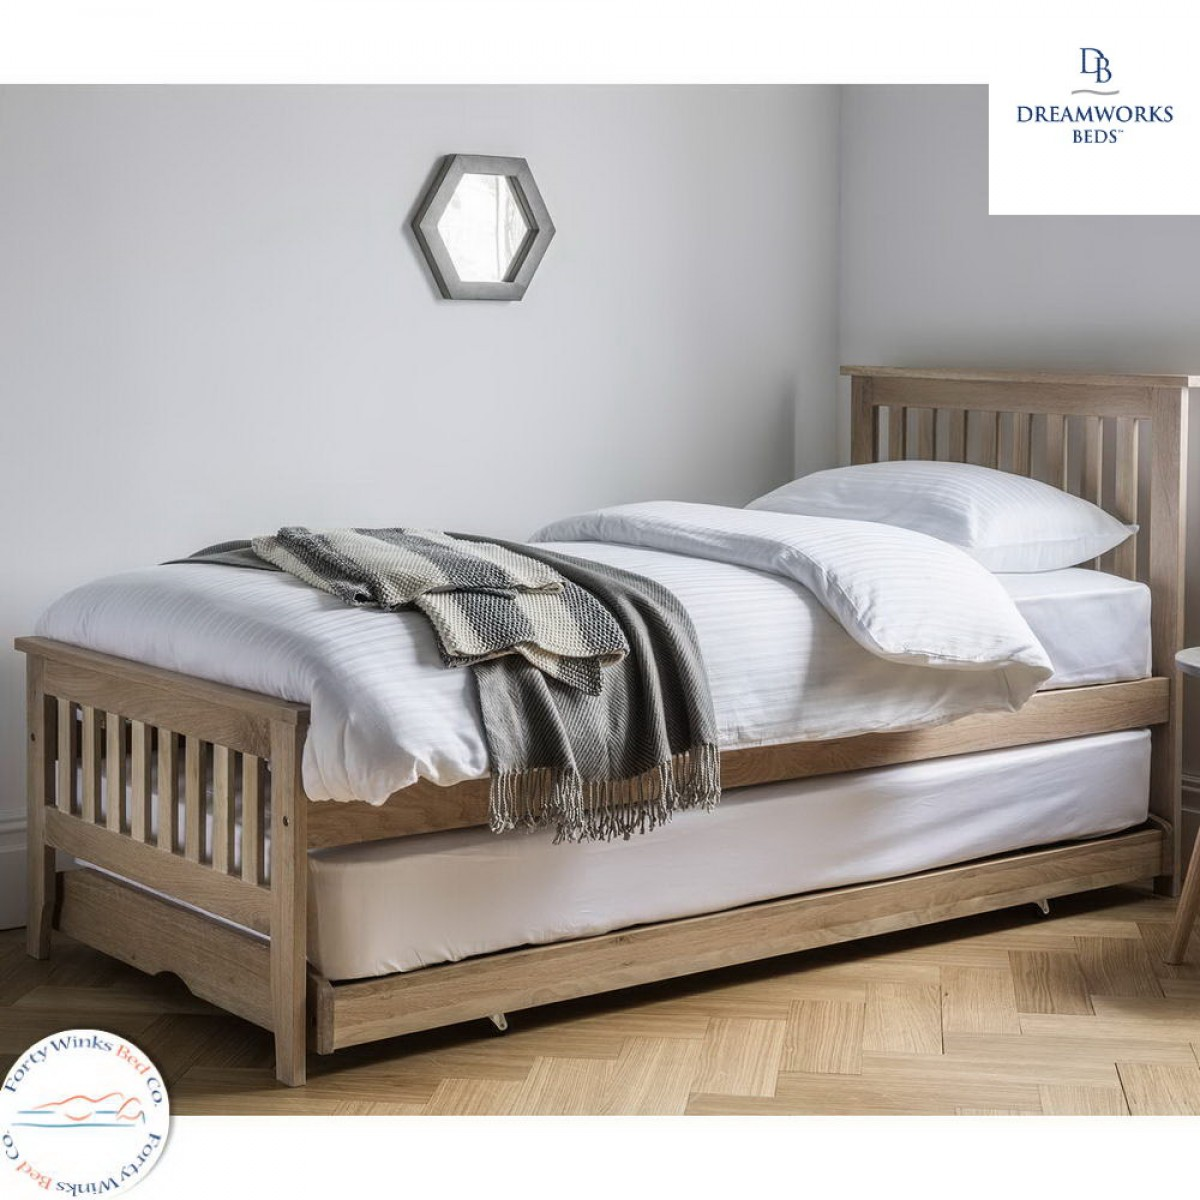 guest beds dreamworks banbury solid oak pull out guest bed mvuaxhh cihhbaa